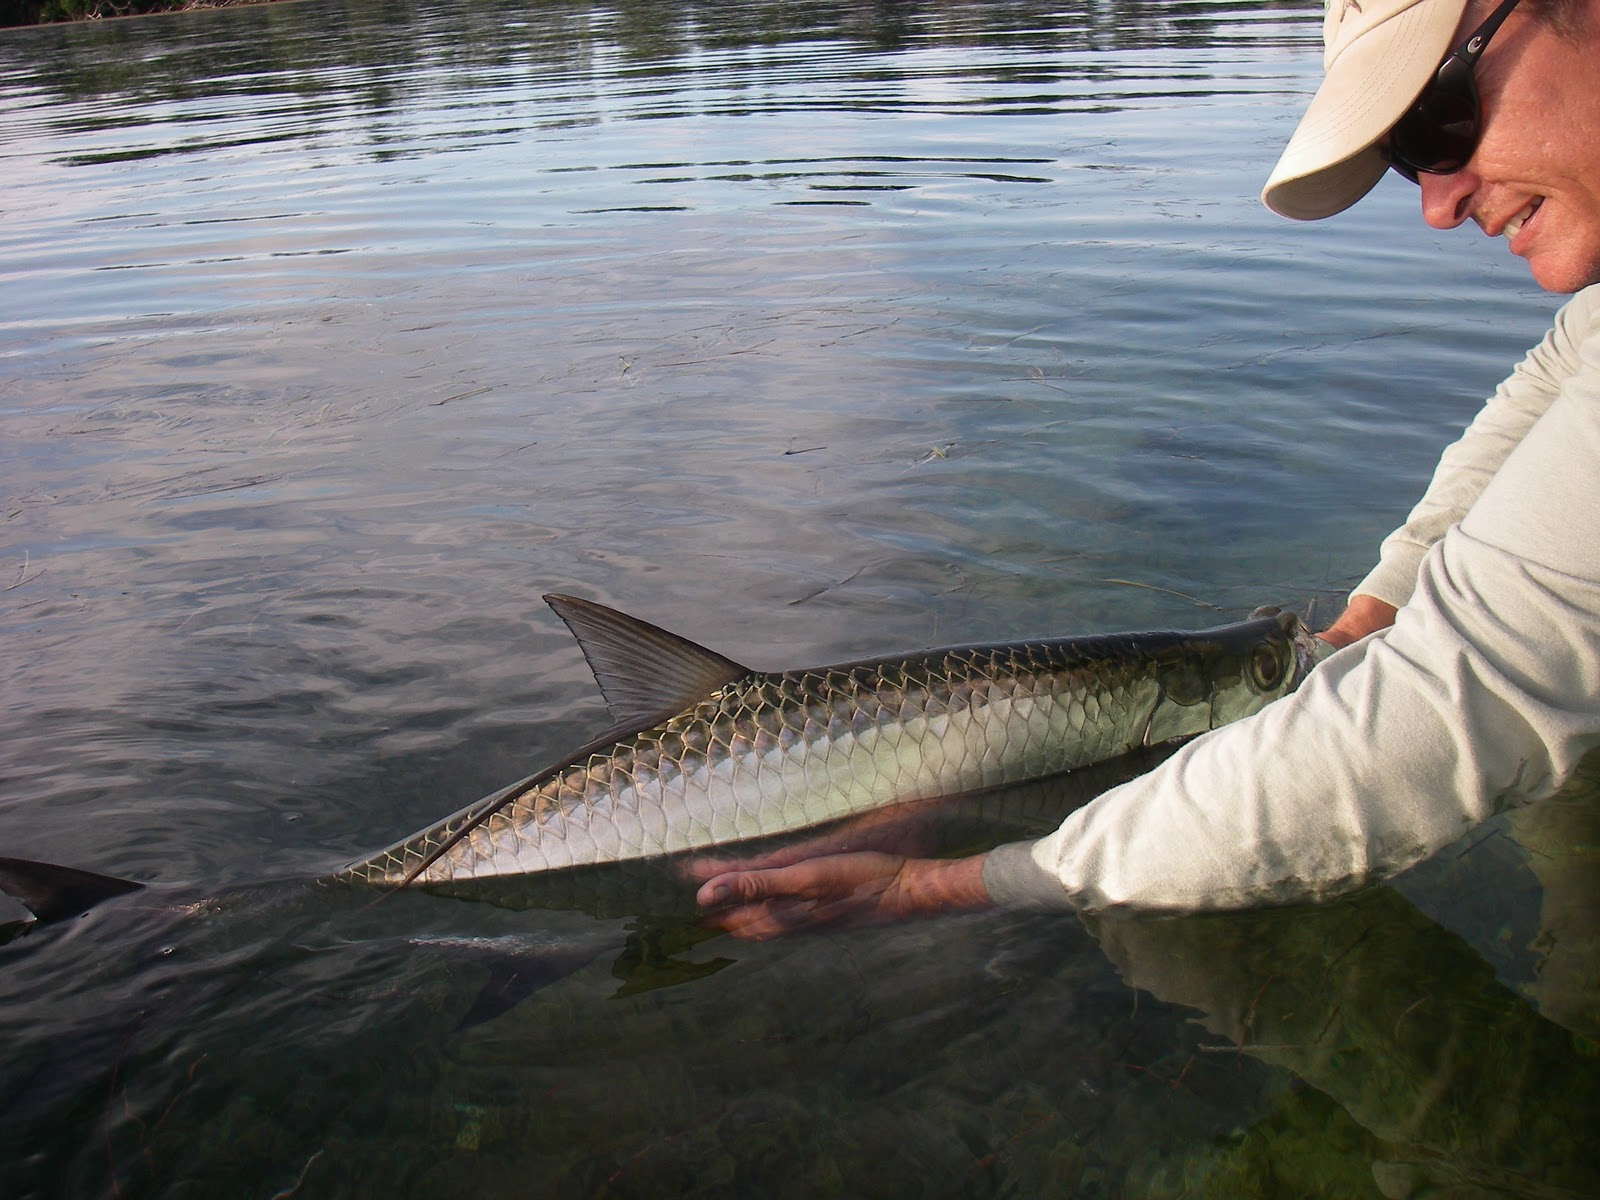 Fly Fishing For Tarpon In the Everglades